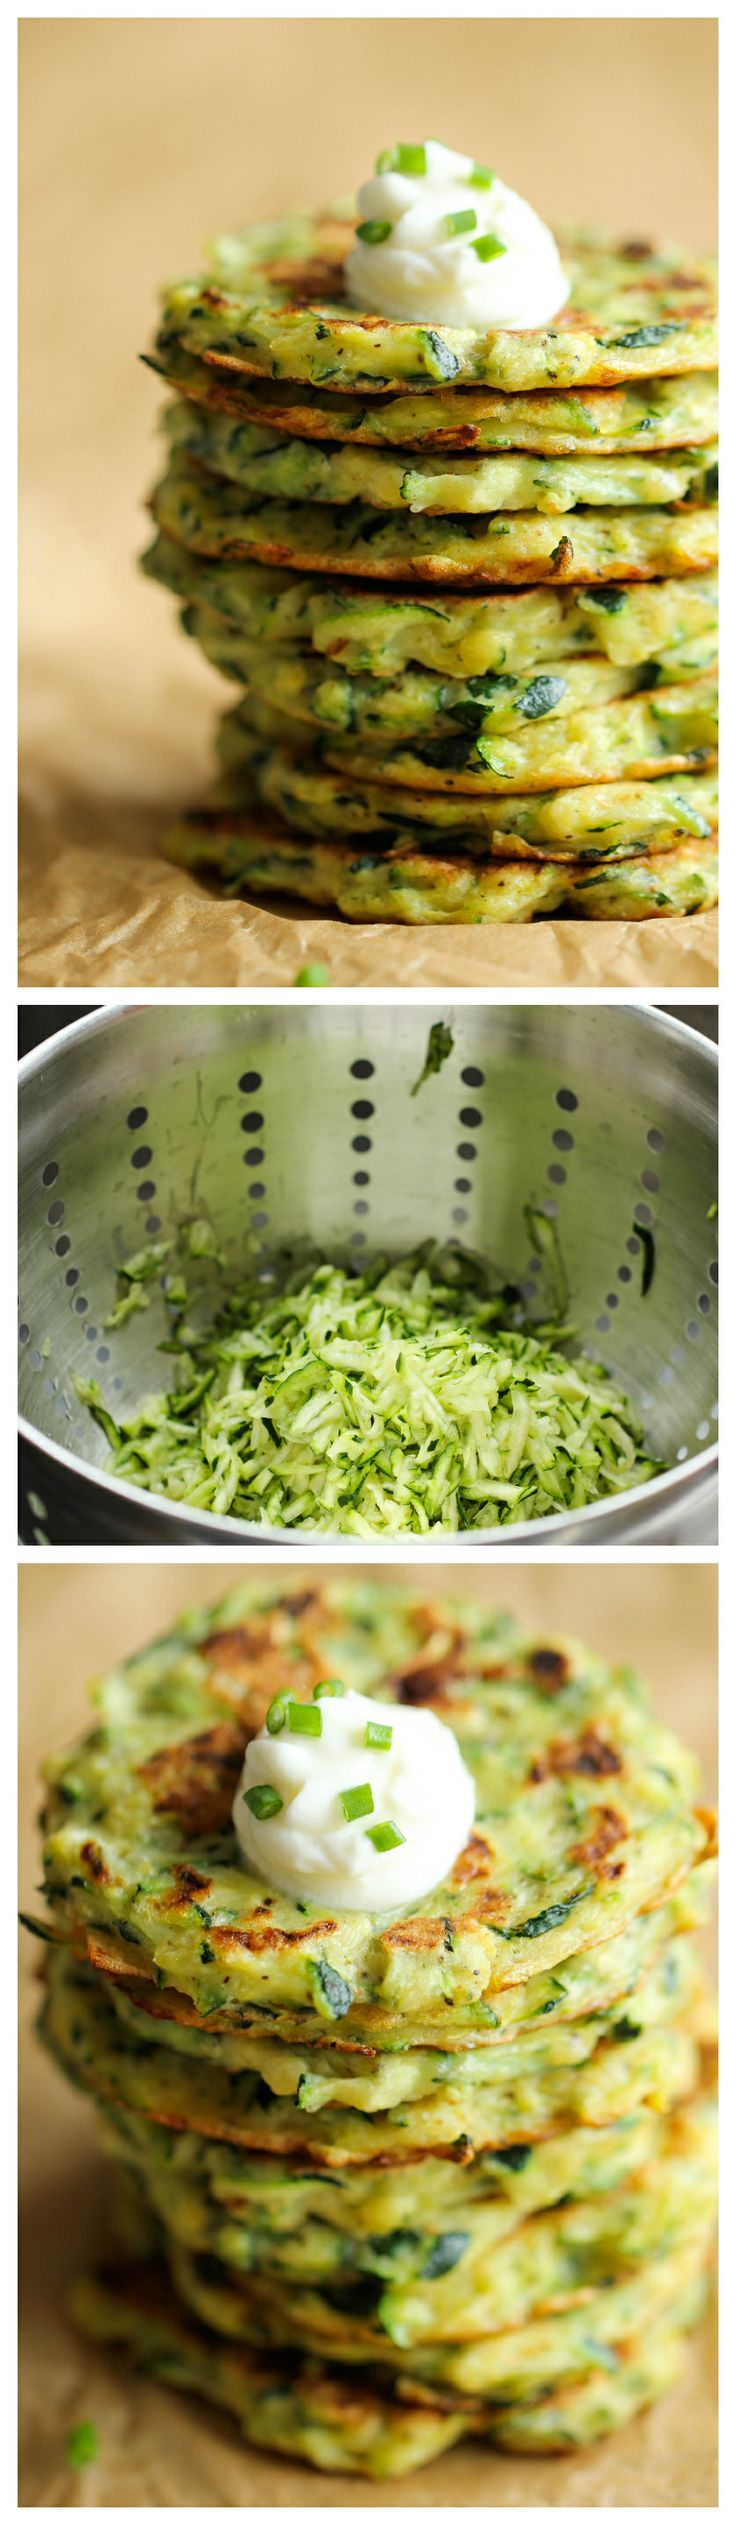 Zucchini Fritters - These fritters are unbelievably easy to make, low calorie, and the perfect way to sneak in some veggies!,